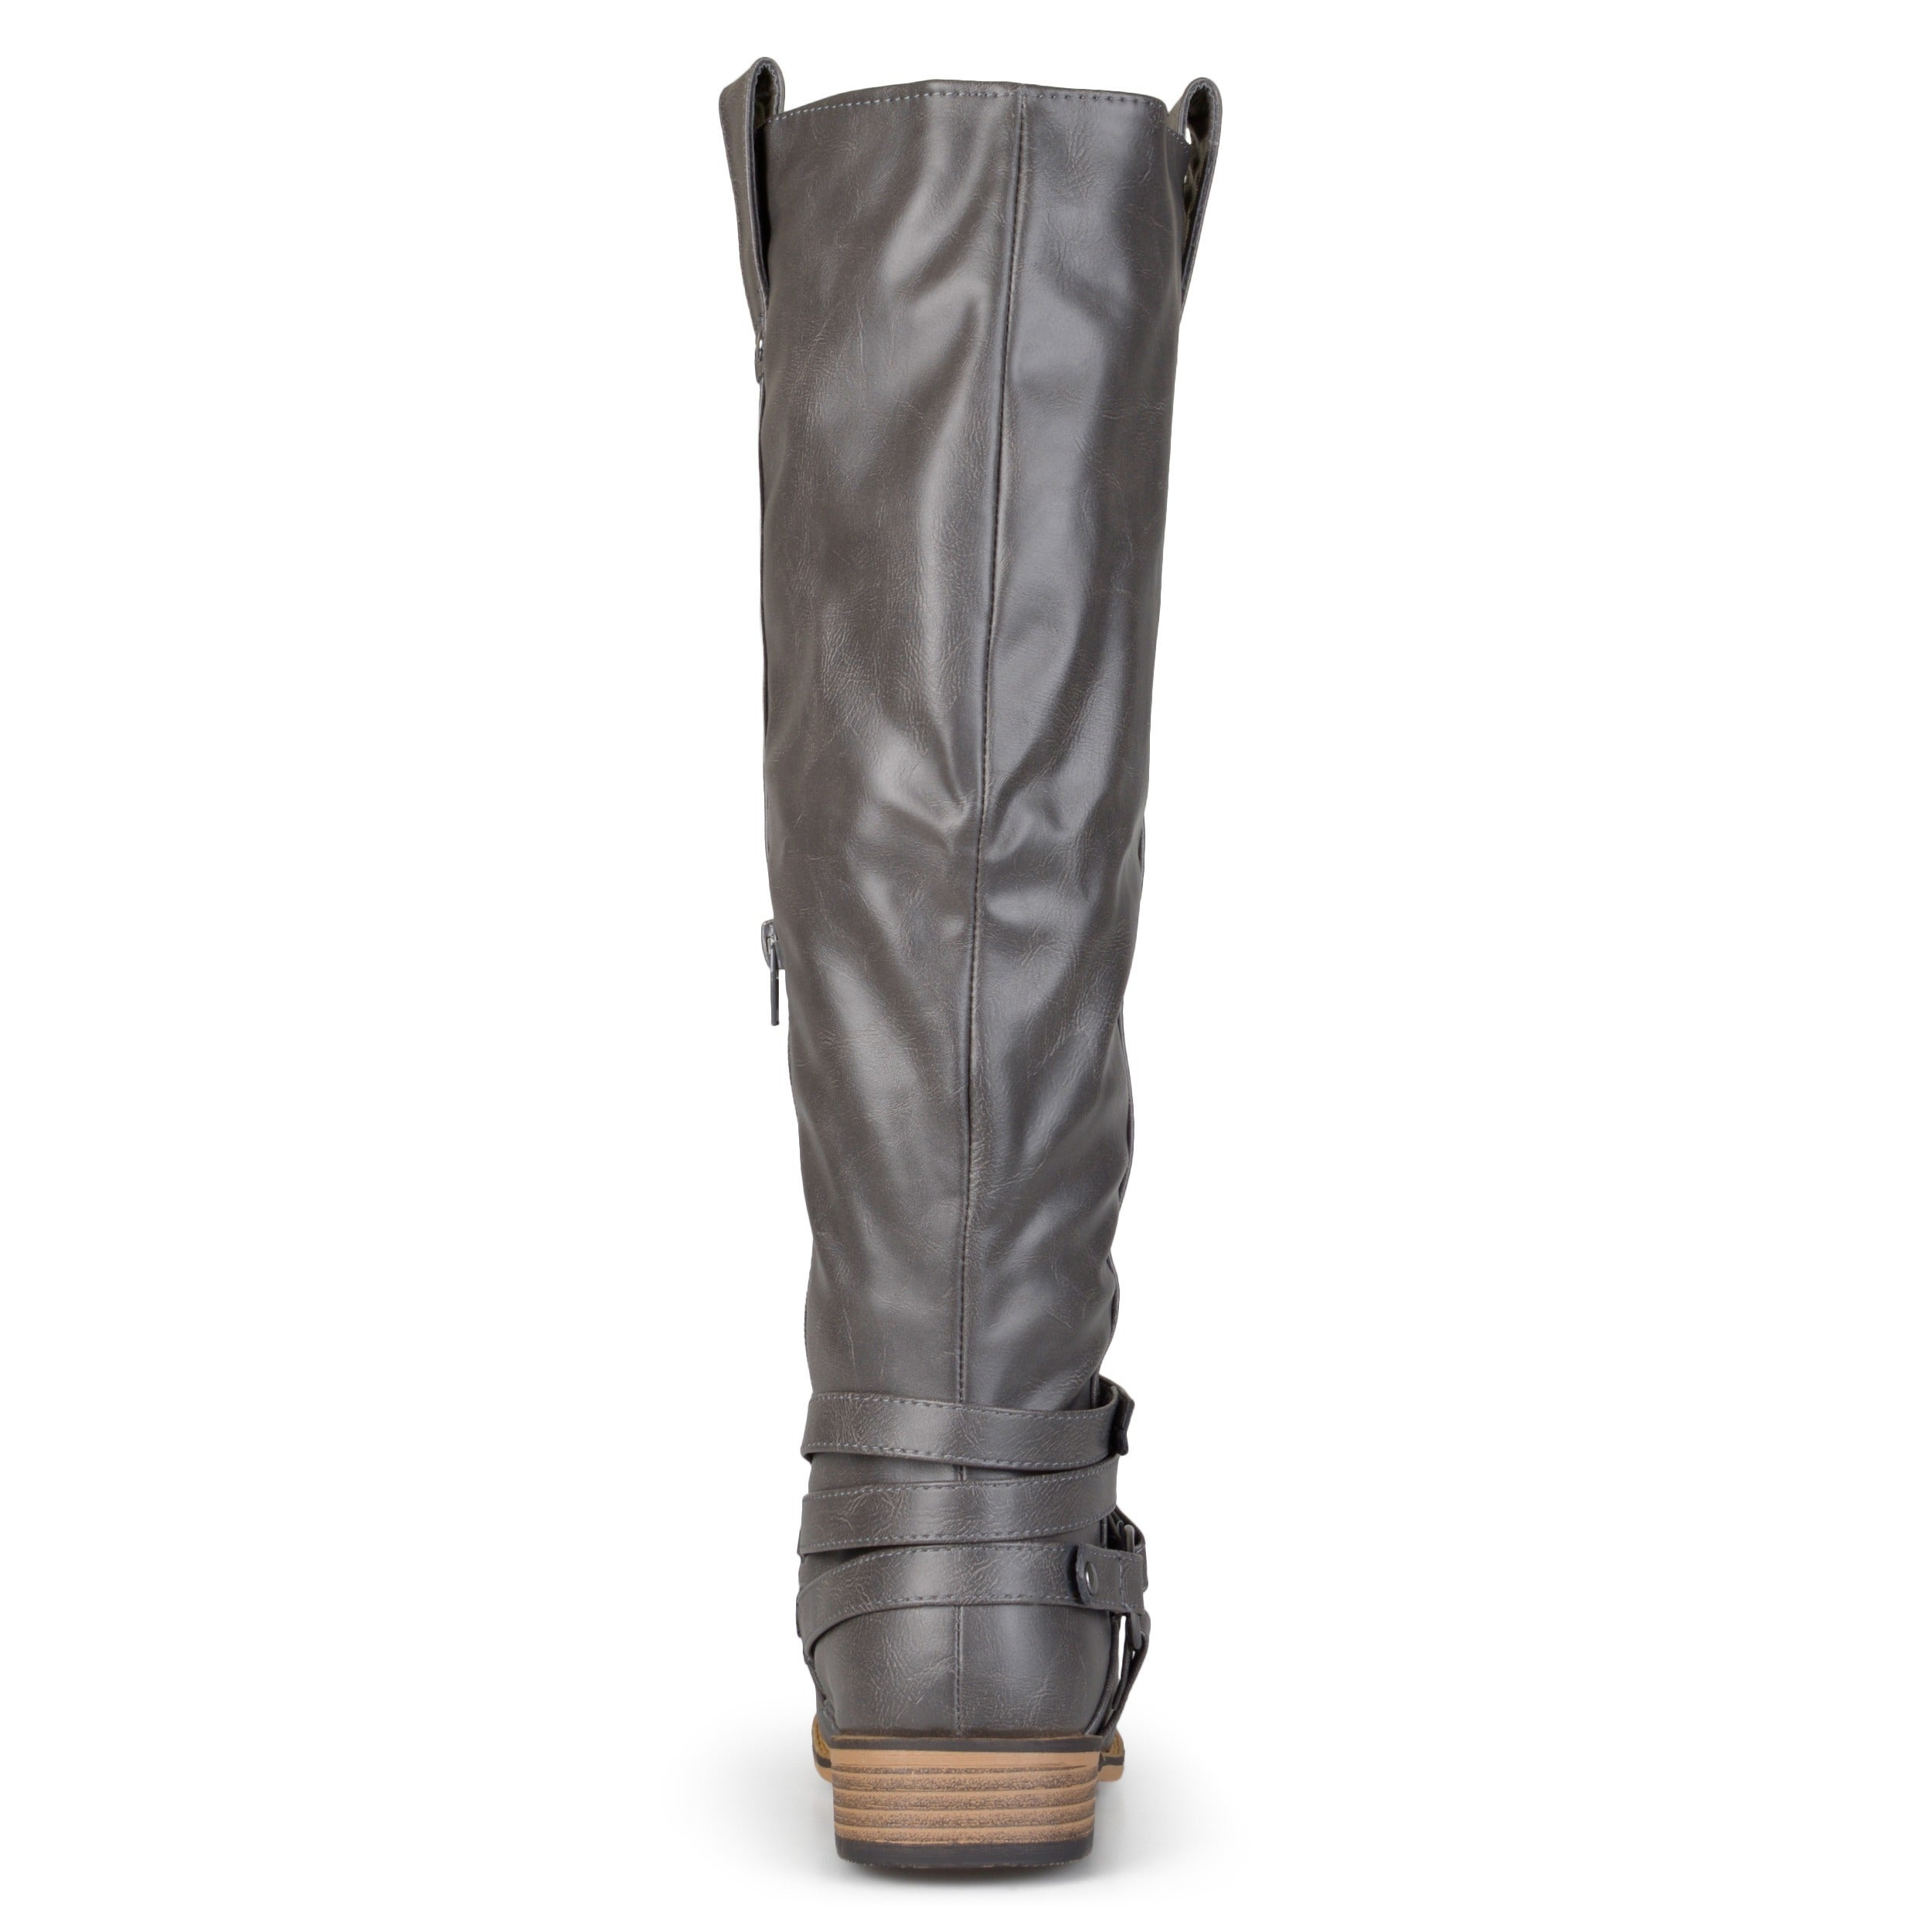 6f45658d5e2c Shop Journee Collection Women s  Walla  Regular and Wide-calf Ankle-strap  Knee-high Riding Boot - On Sale - Free Shipping Today - Overstock - 8342899